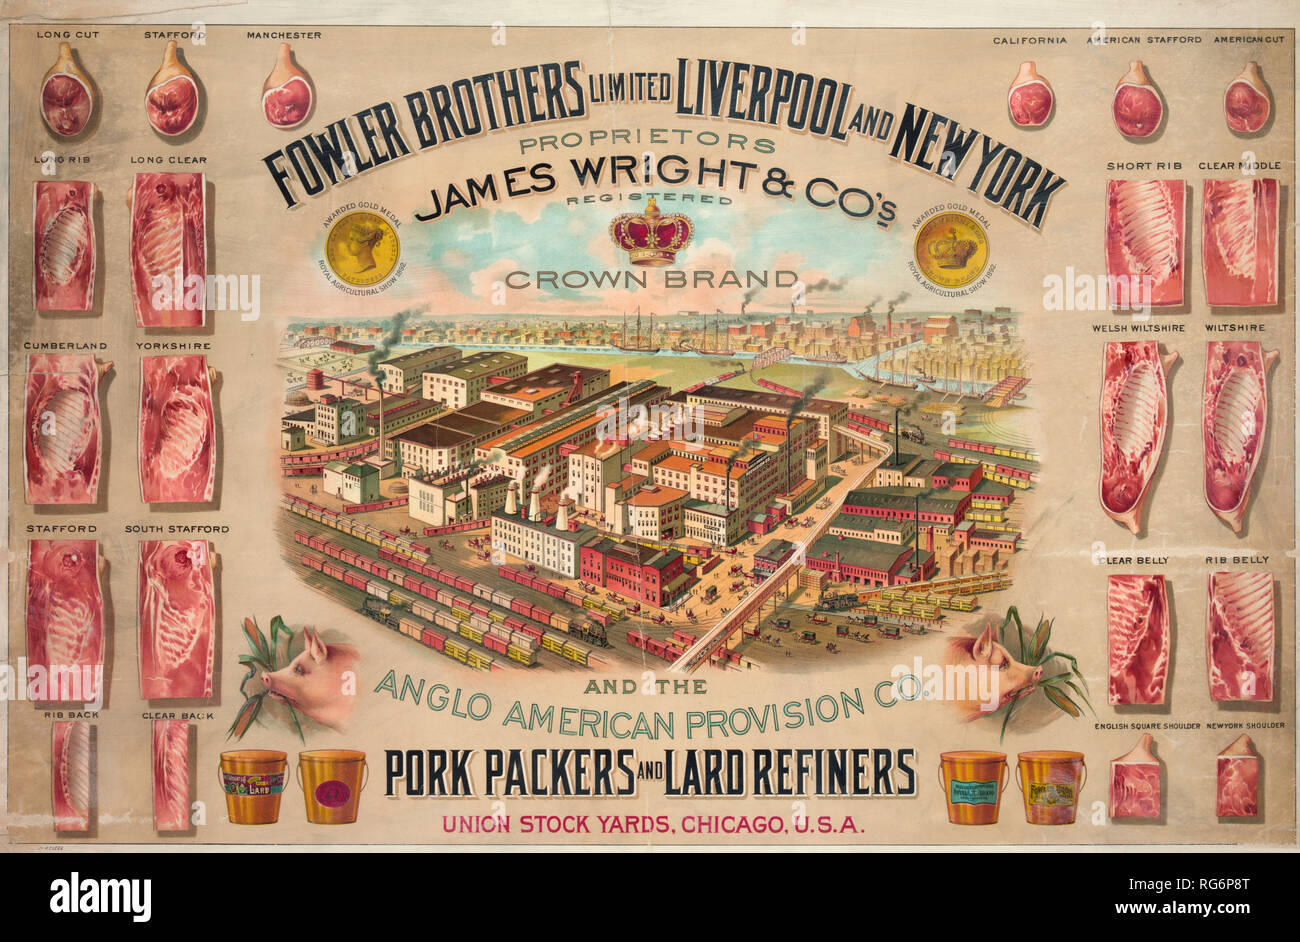 Fowler Brothers Limited Liverpool and New York. Pork packers and lard refiners - Stock Image